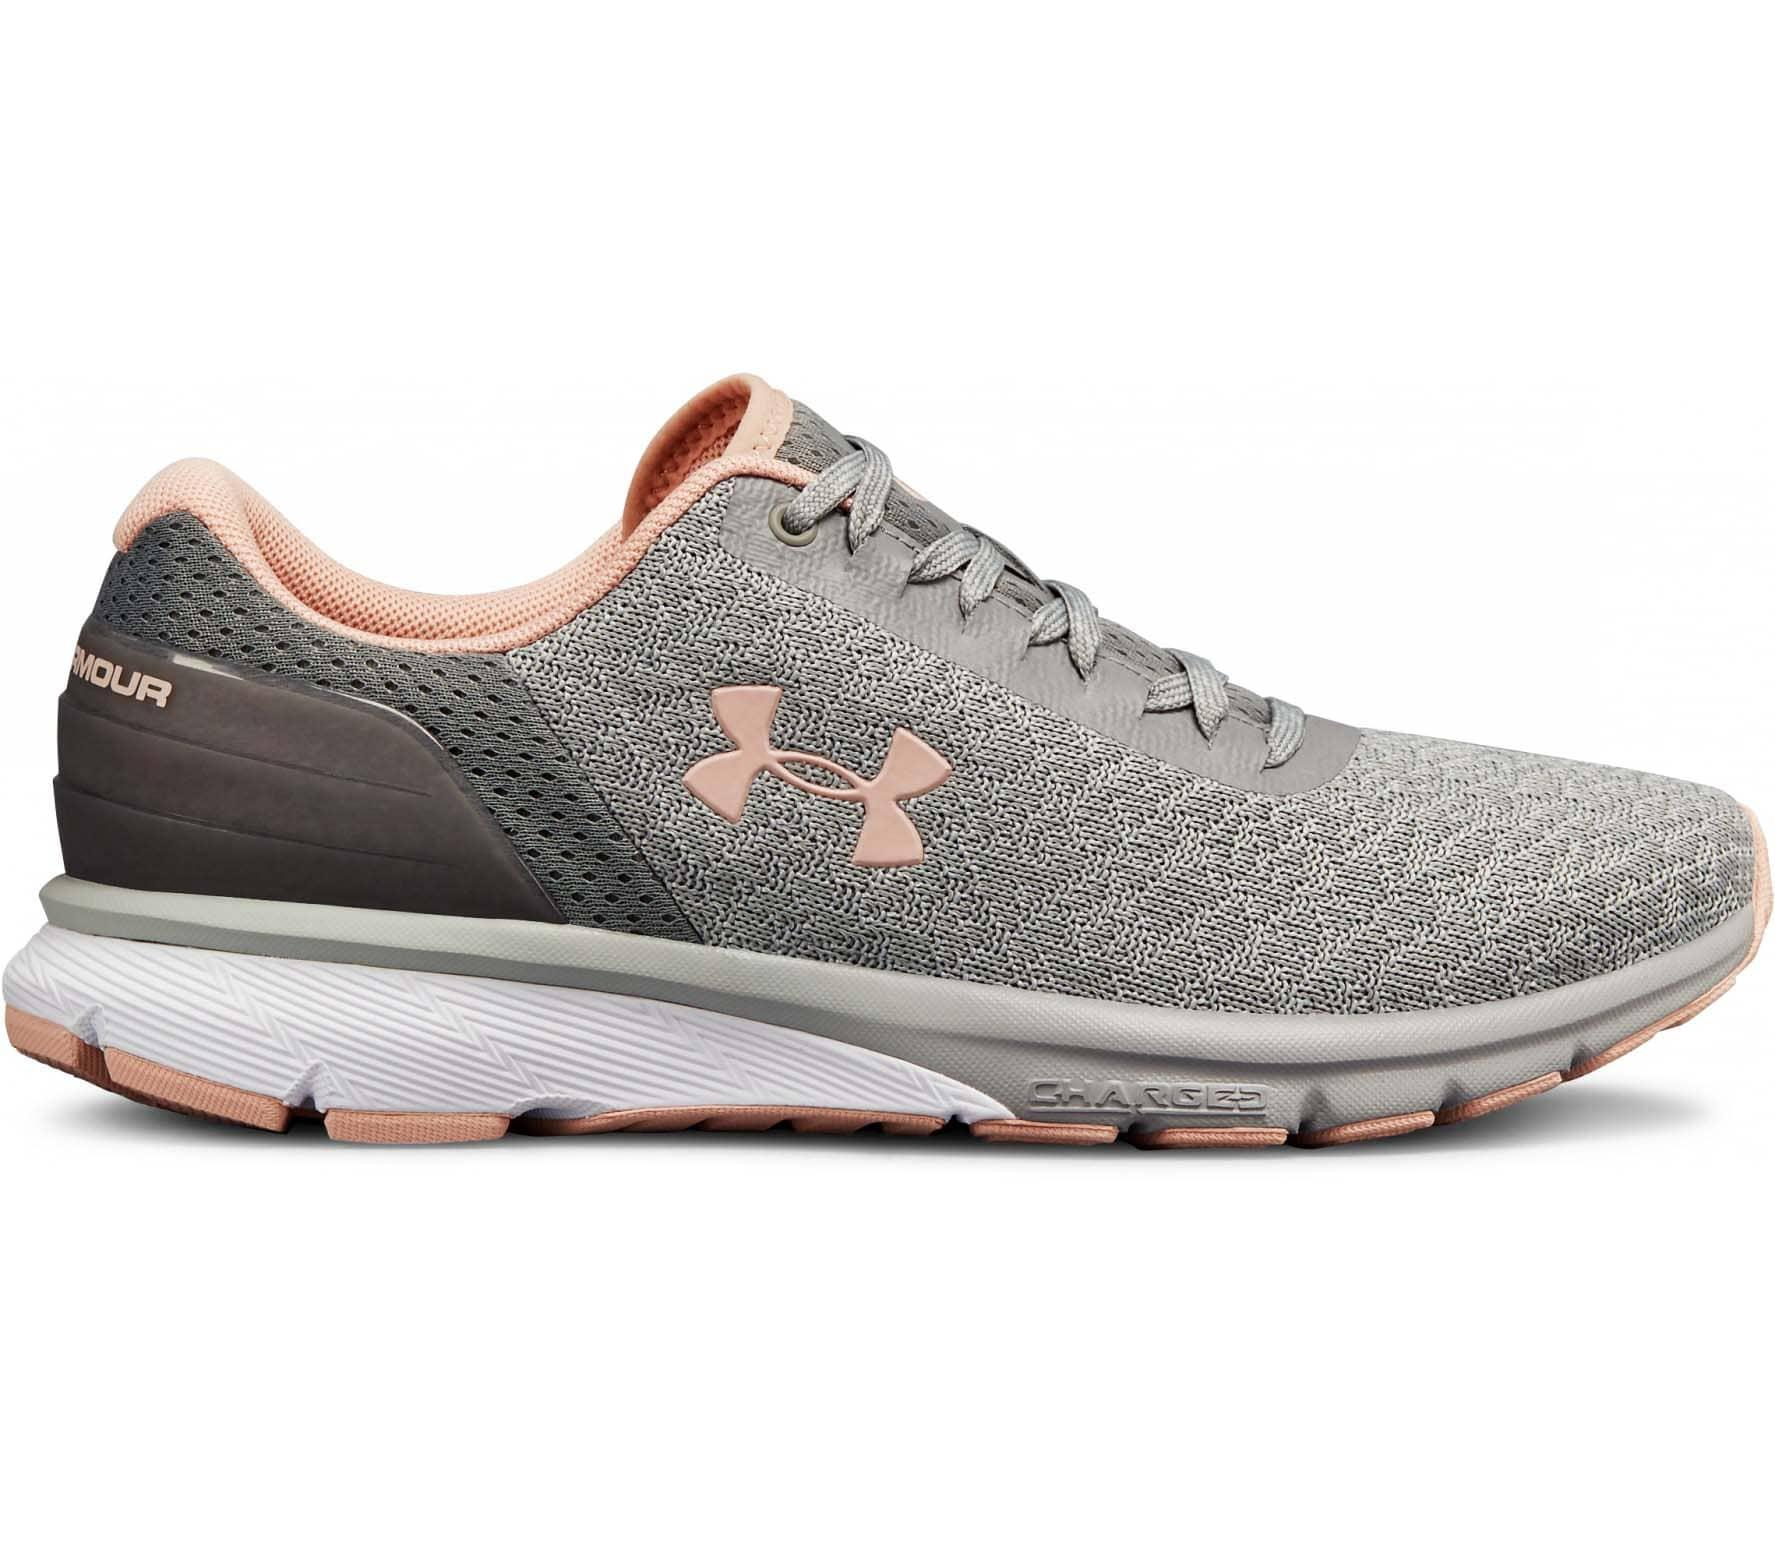 Under Armour Grey Pink UA Charged Escape 2 Running Shoes For Women -  3020365- 7bd1184741394